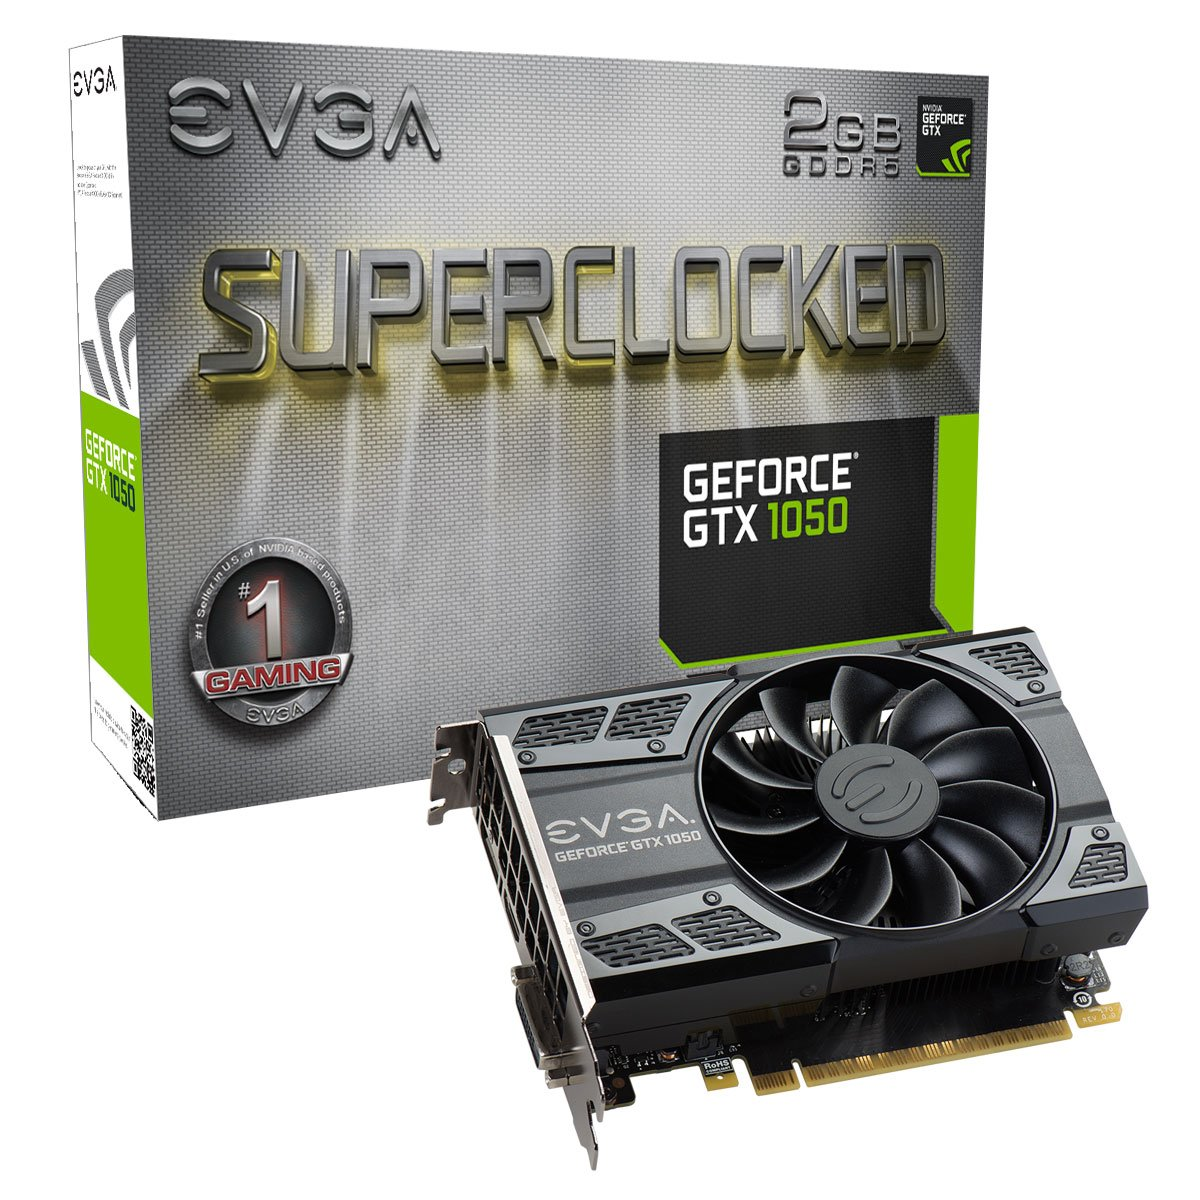 EVGA GeForce GTX 1050 SC GAMING, 2GB GDDR5, DX12 OSD Support (PXOC) Graphics Card 02G-P4-6152-KR by EVGA (Image #1)